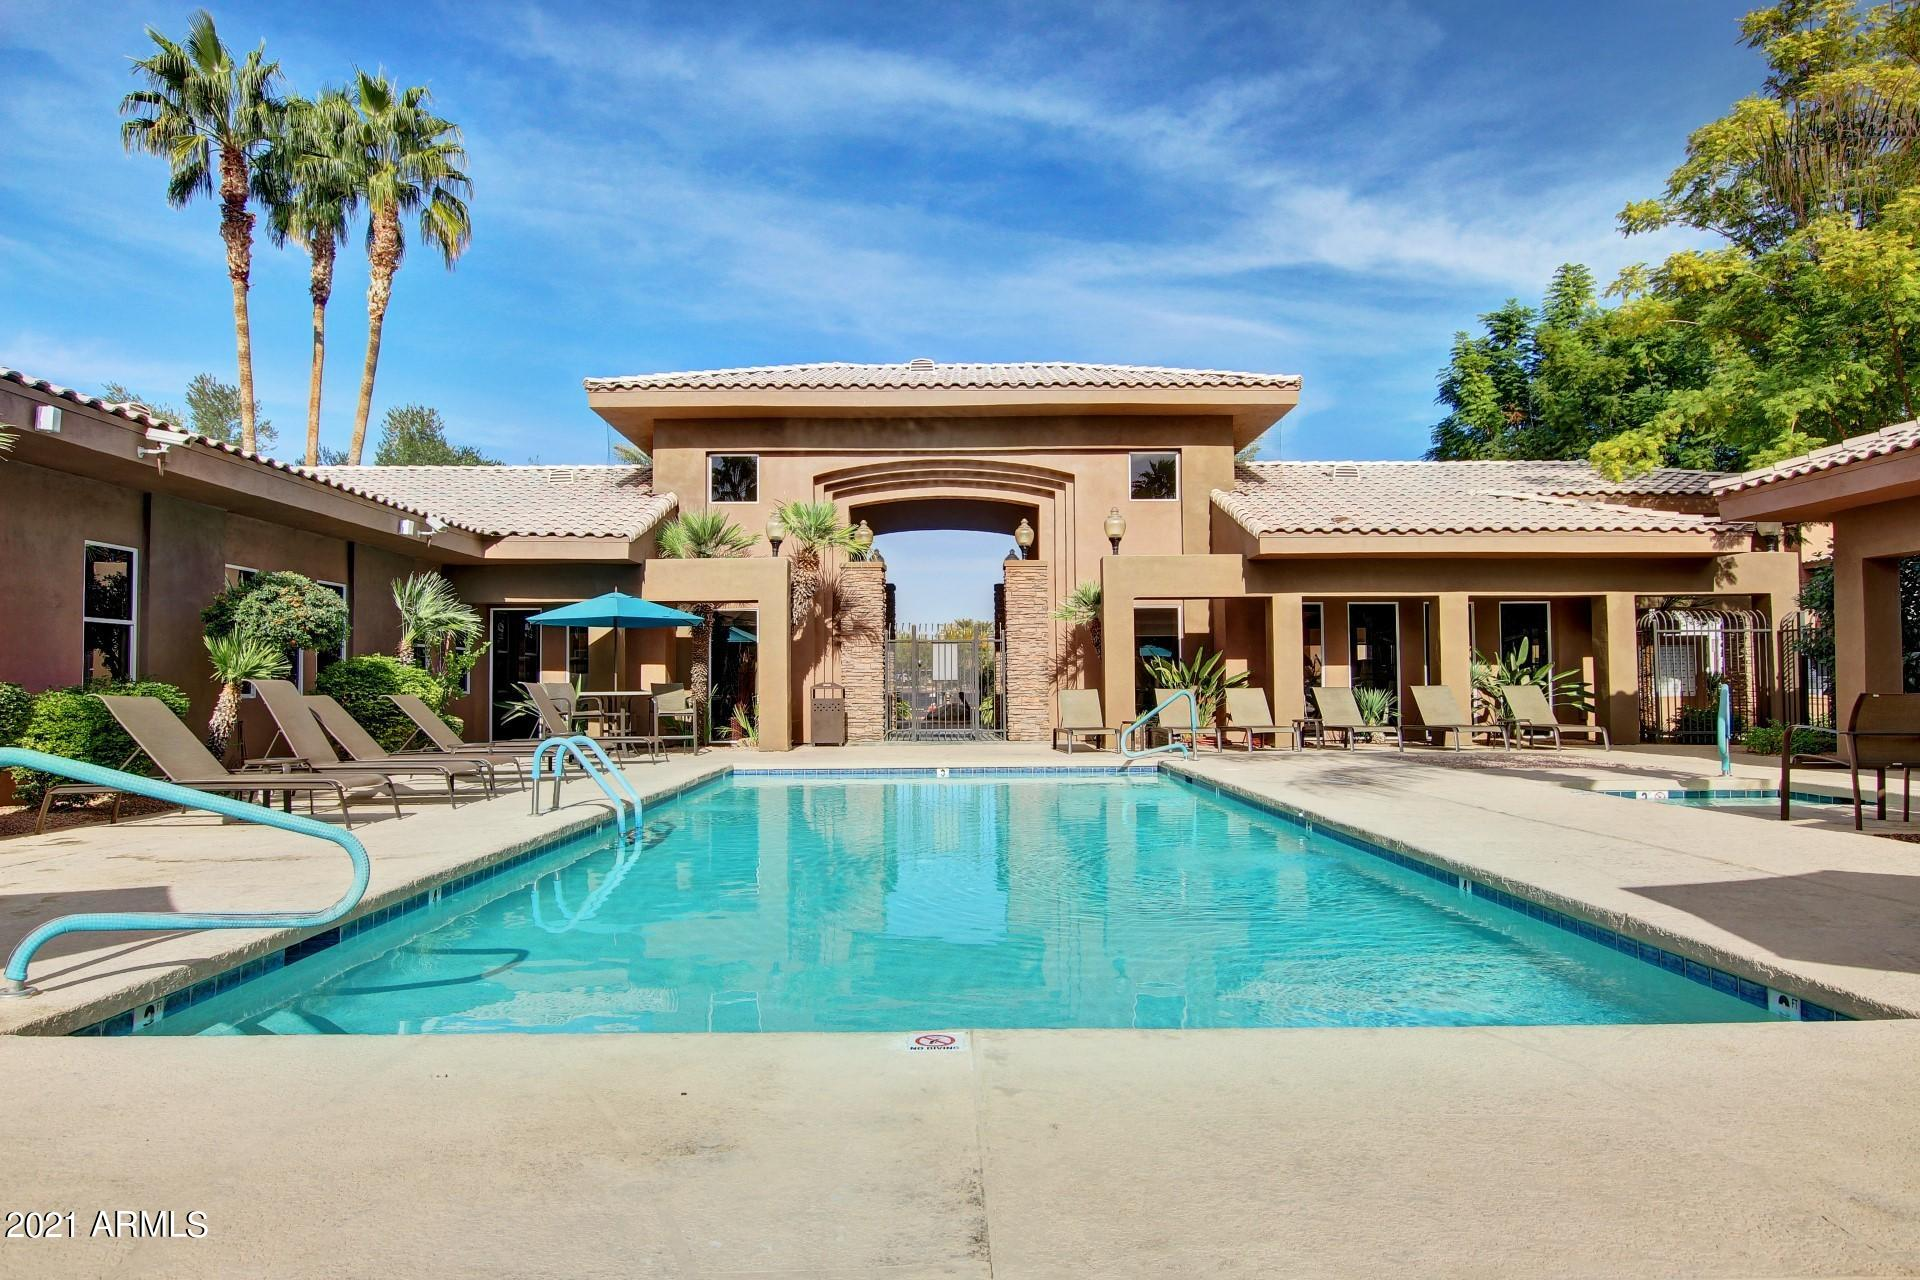 7009 E ACOMA Drive # 1168, Scottsdale, AZ 85254, 2 Bedrooms Bedrooms, ,Residential Lease,For Rent,7009 E ACOMA Drive # 1168,6194265